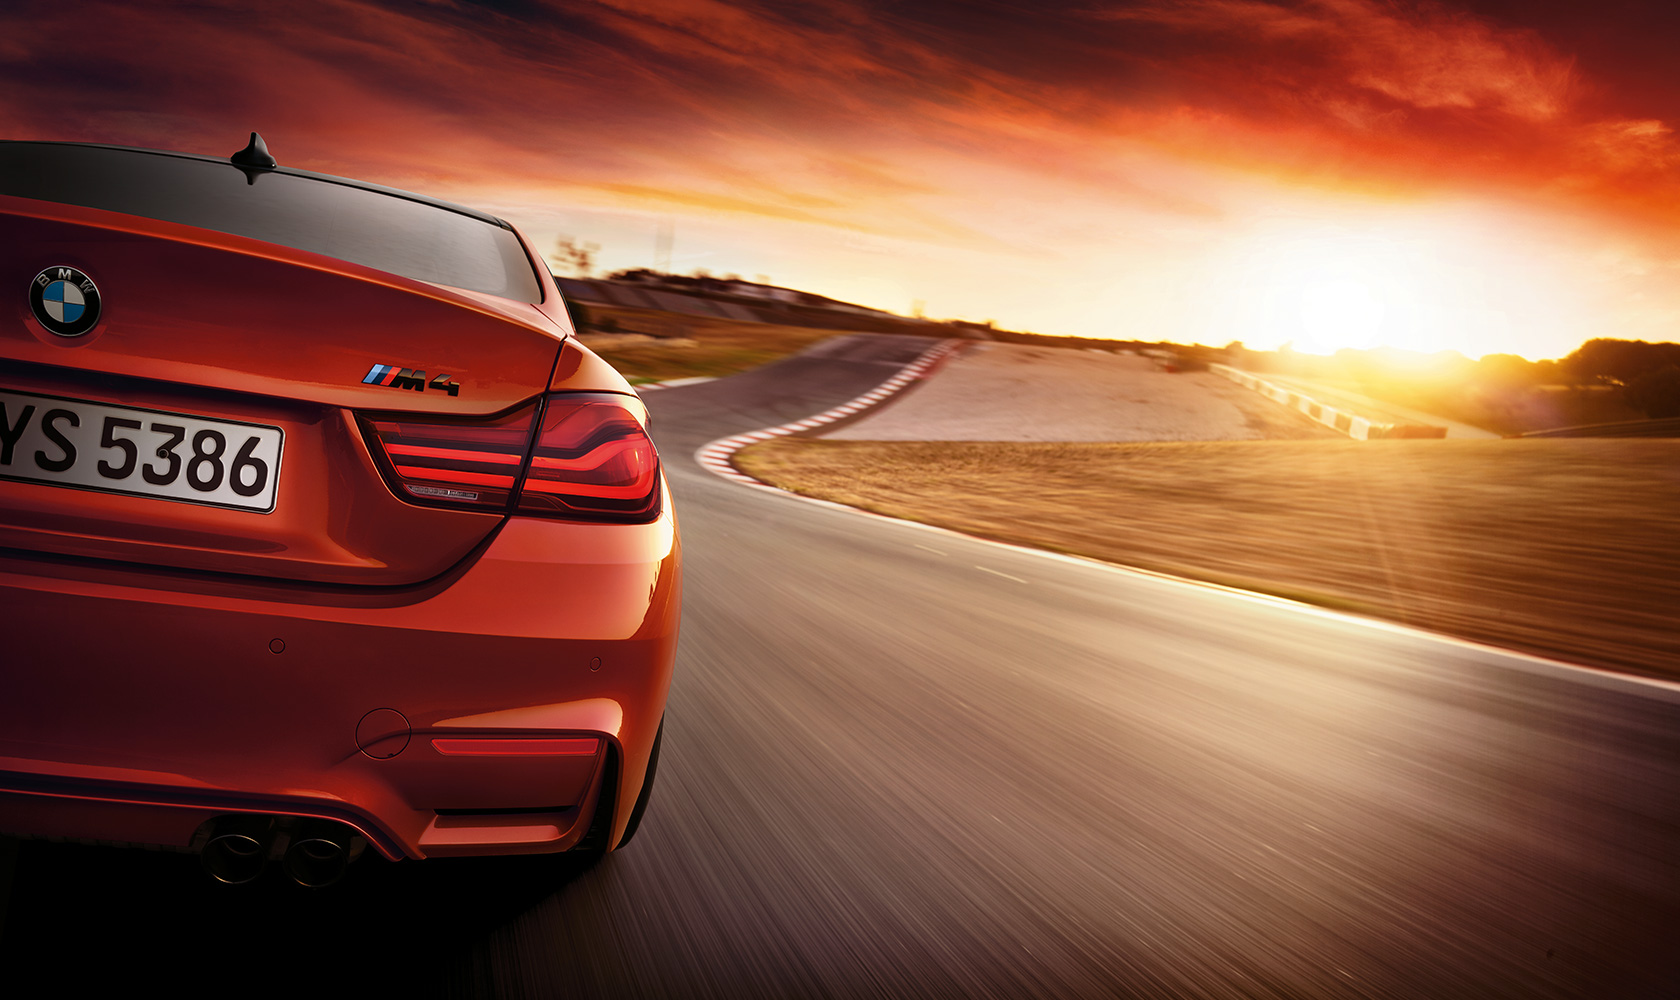 The BMW M Competition Package: Extra power and performance